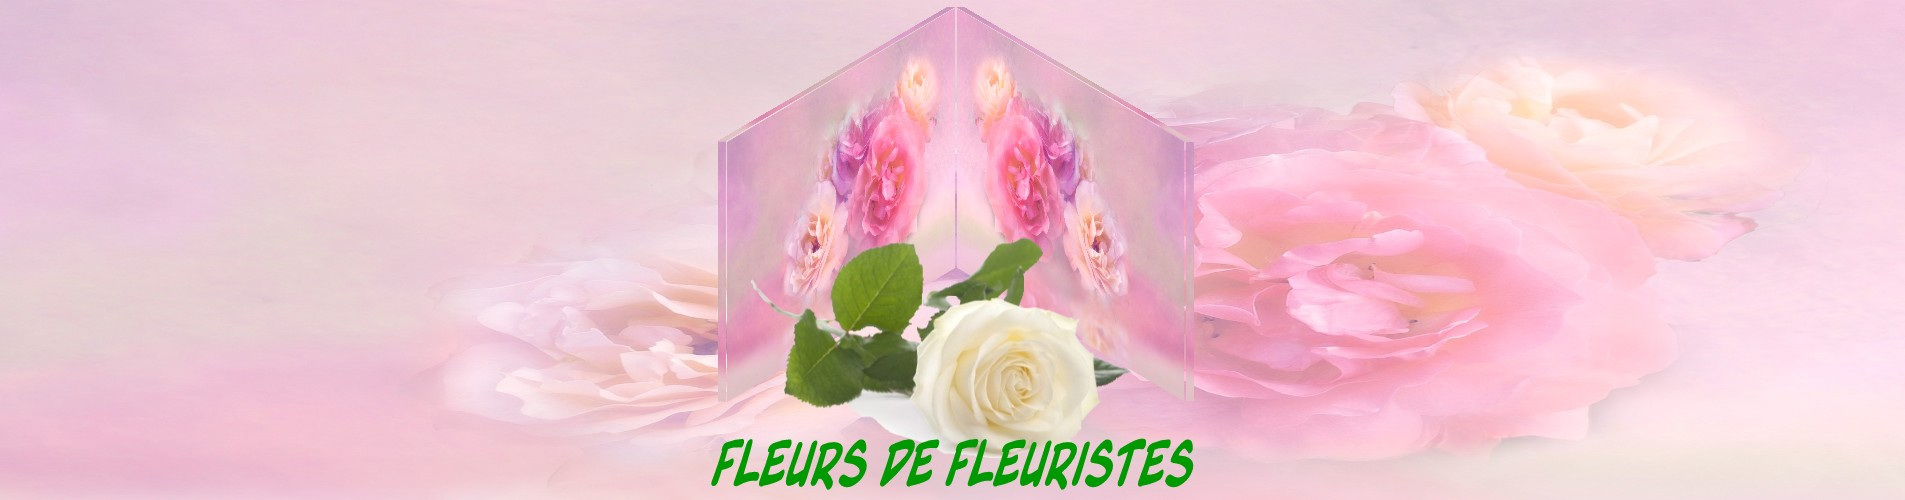 FLEURISTE GERMAINE